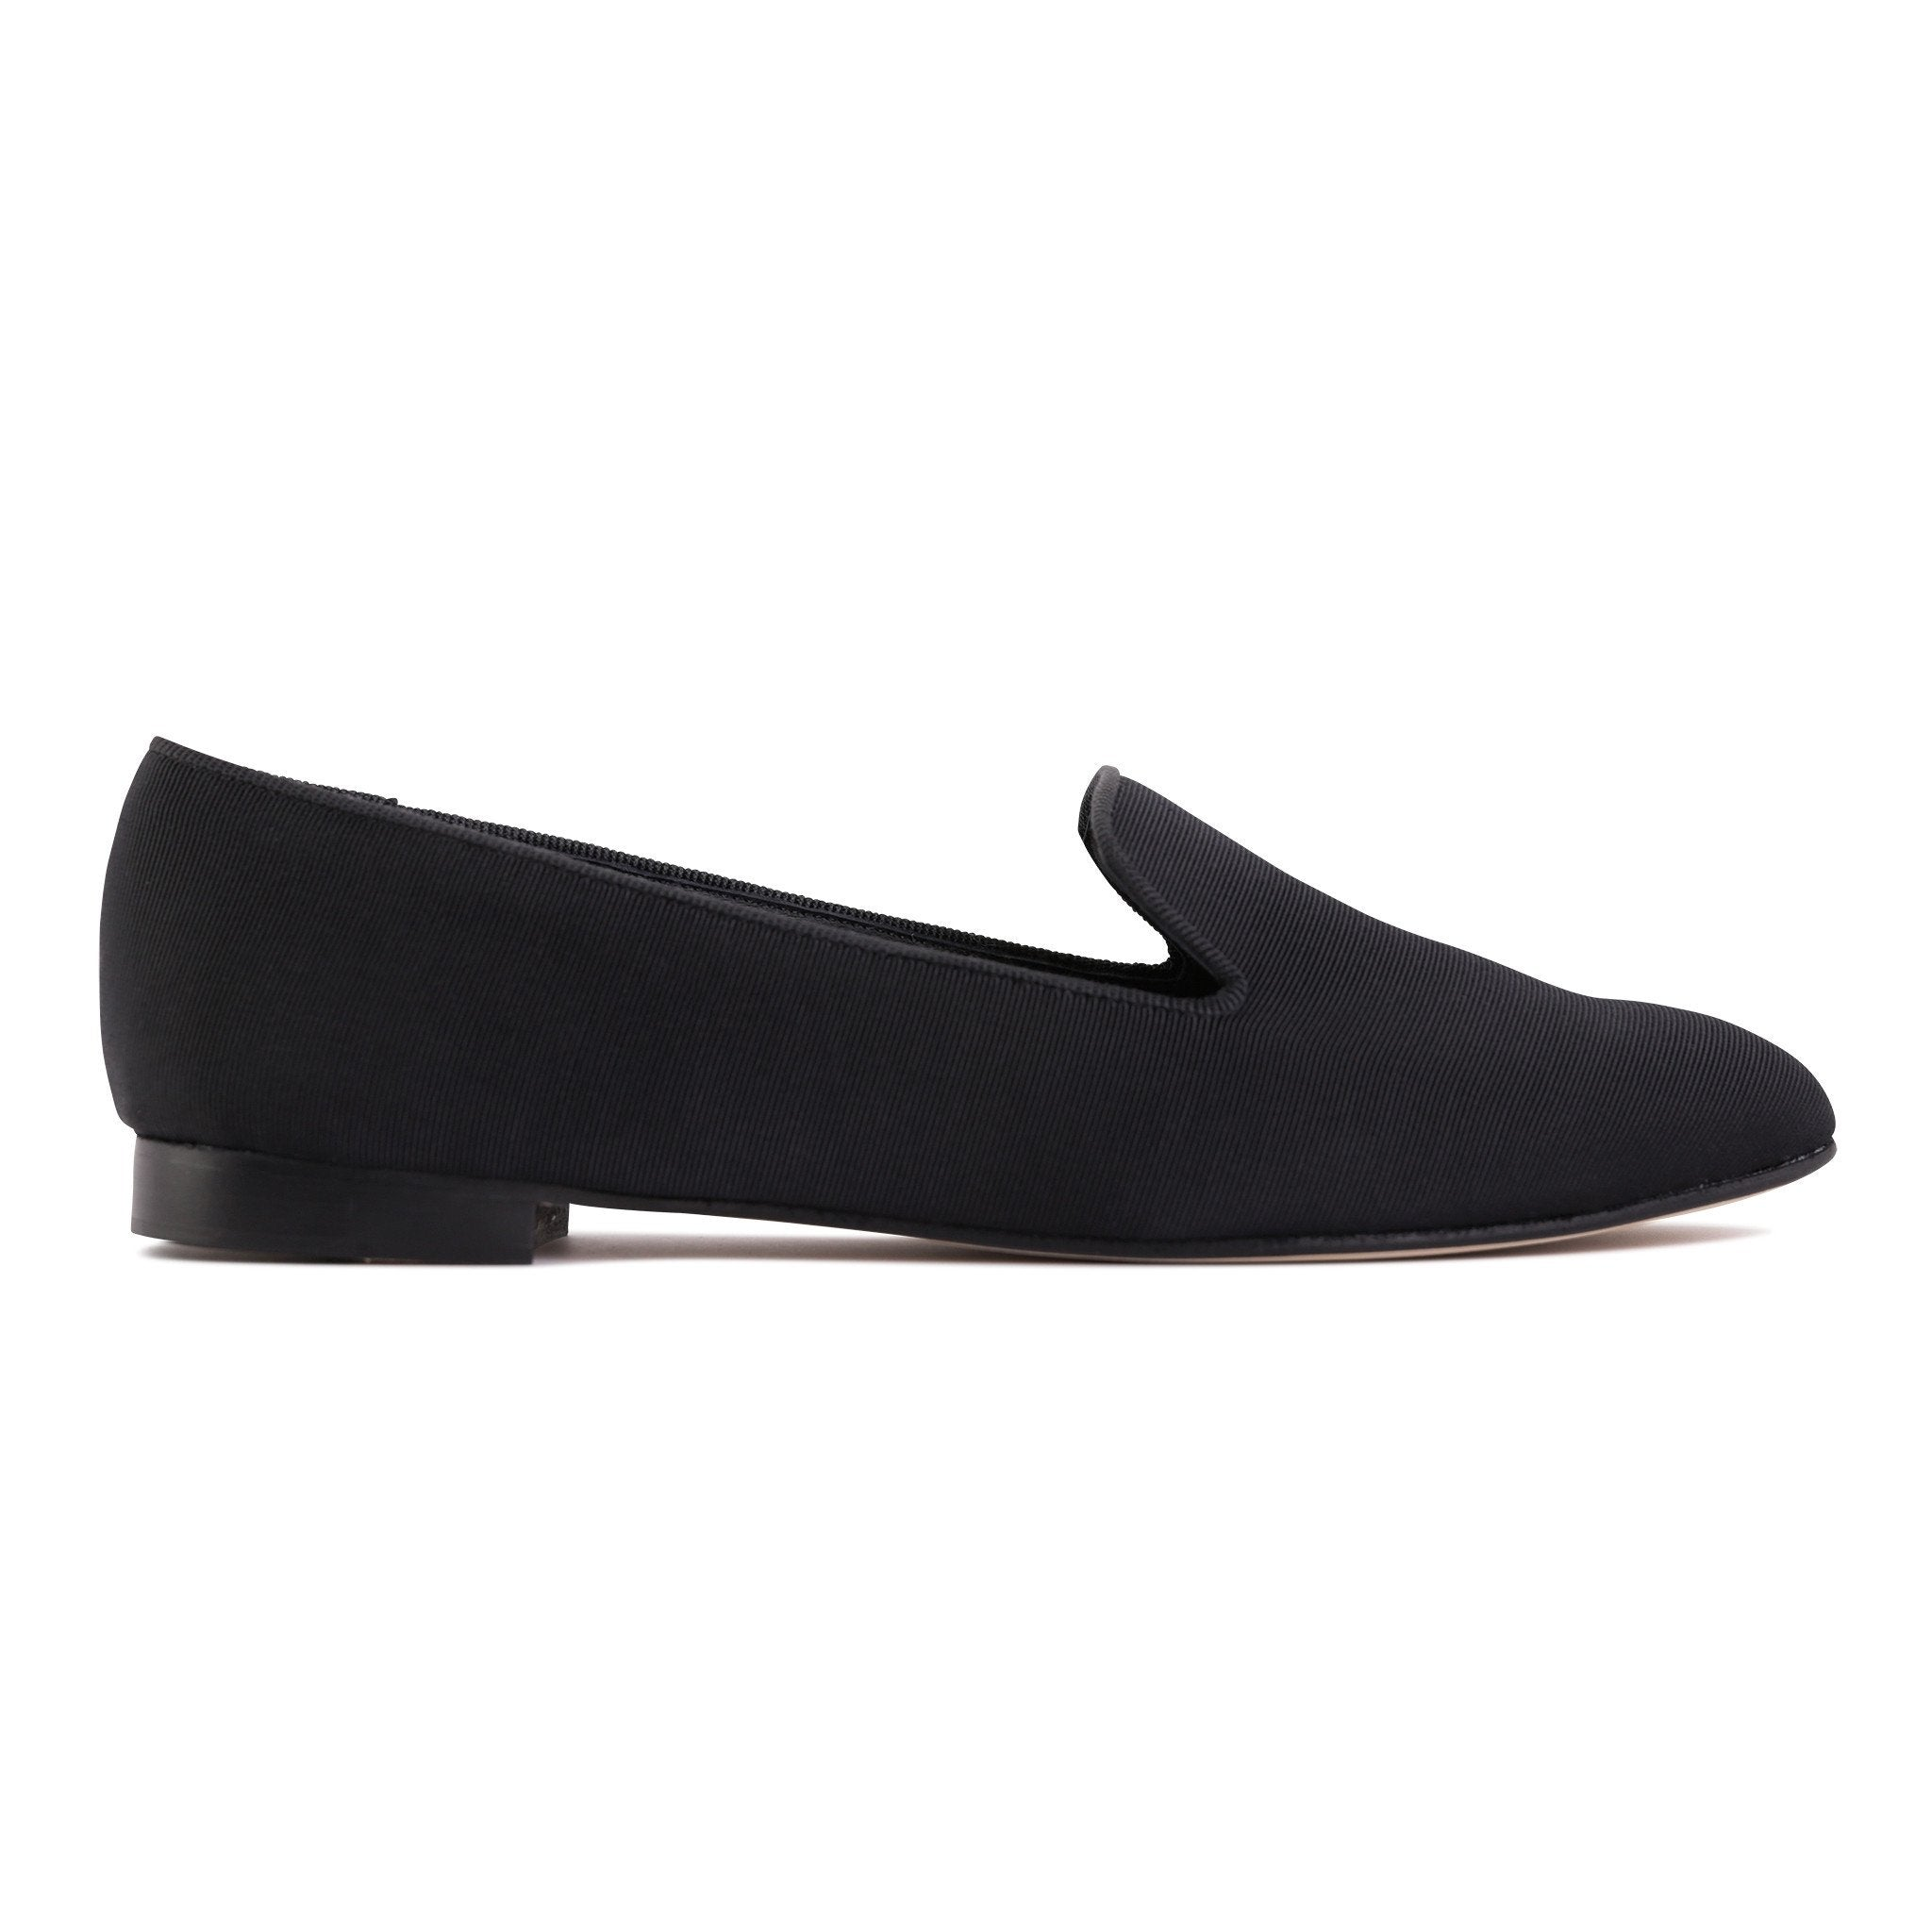 RAVENNA - Textile Grosgrain Nero, VIAJIYU - Women's Hand Made Sustainable Luxury Shoes. Made in Italy. Made to Order.